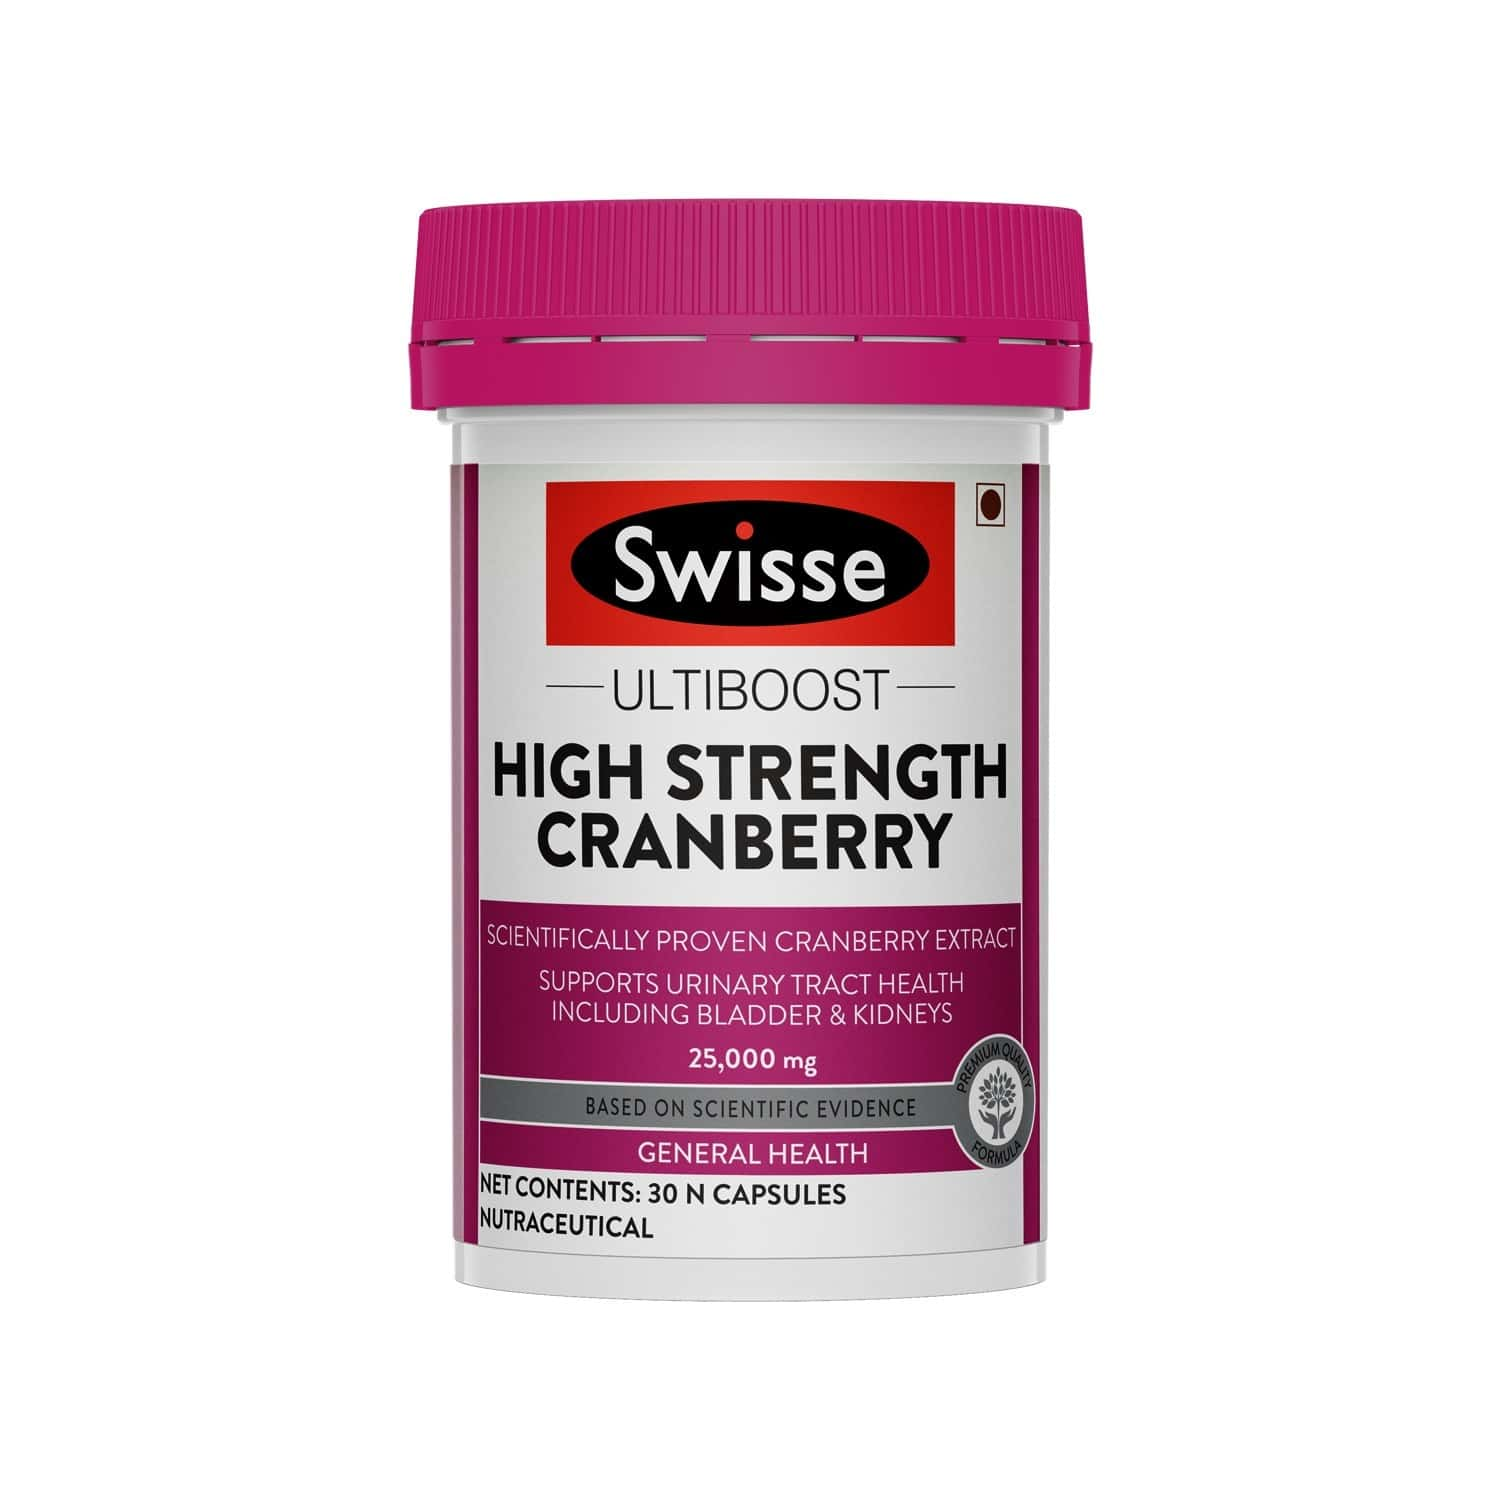 Swisse Ultiboost High Strength Cranberry Antioxidant Rich Supplements For Bladder & Kidney Health - 30 Capsules